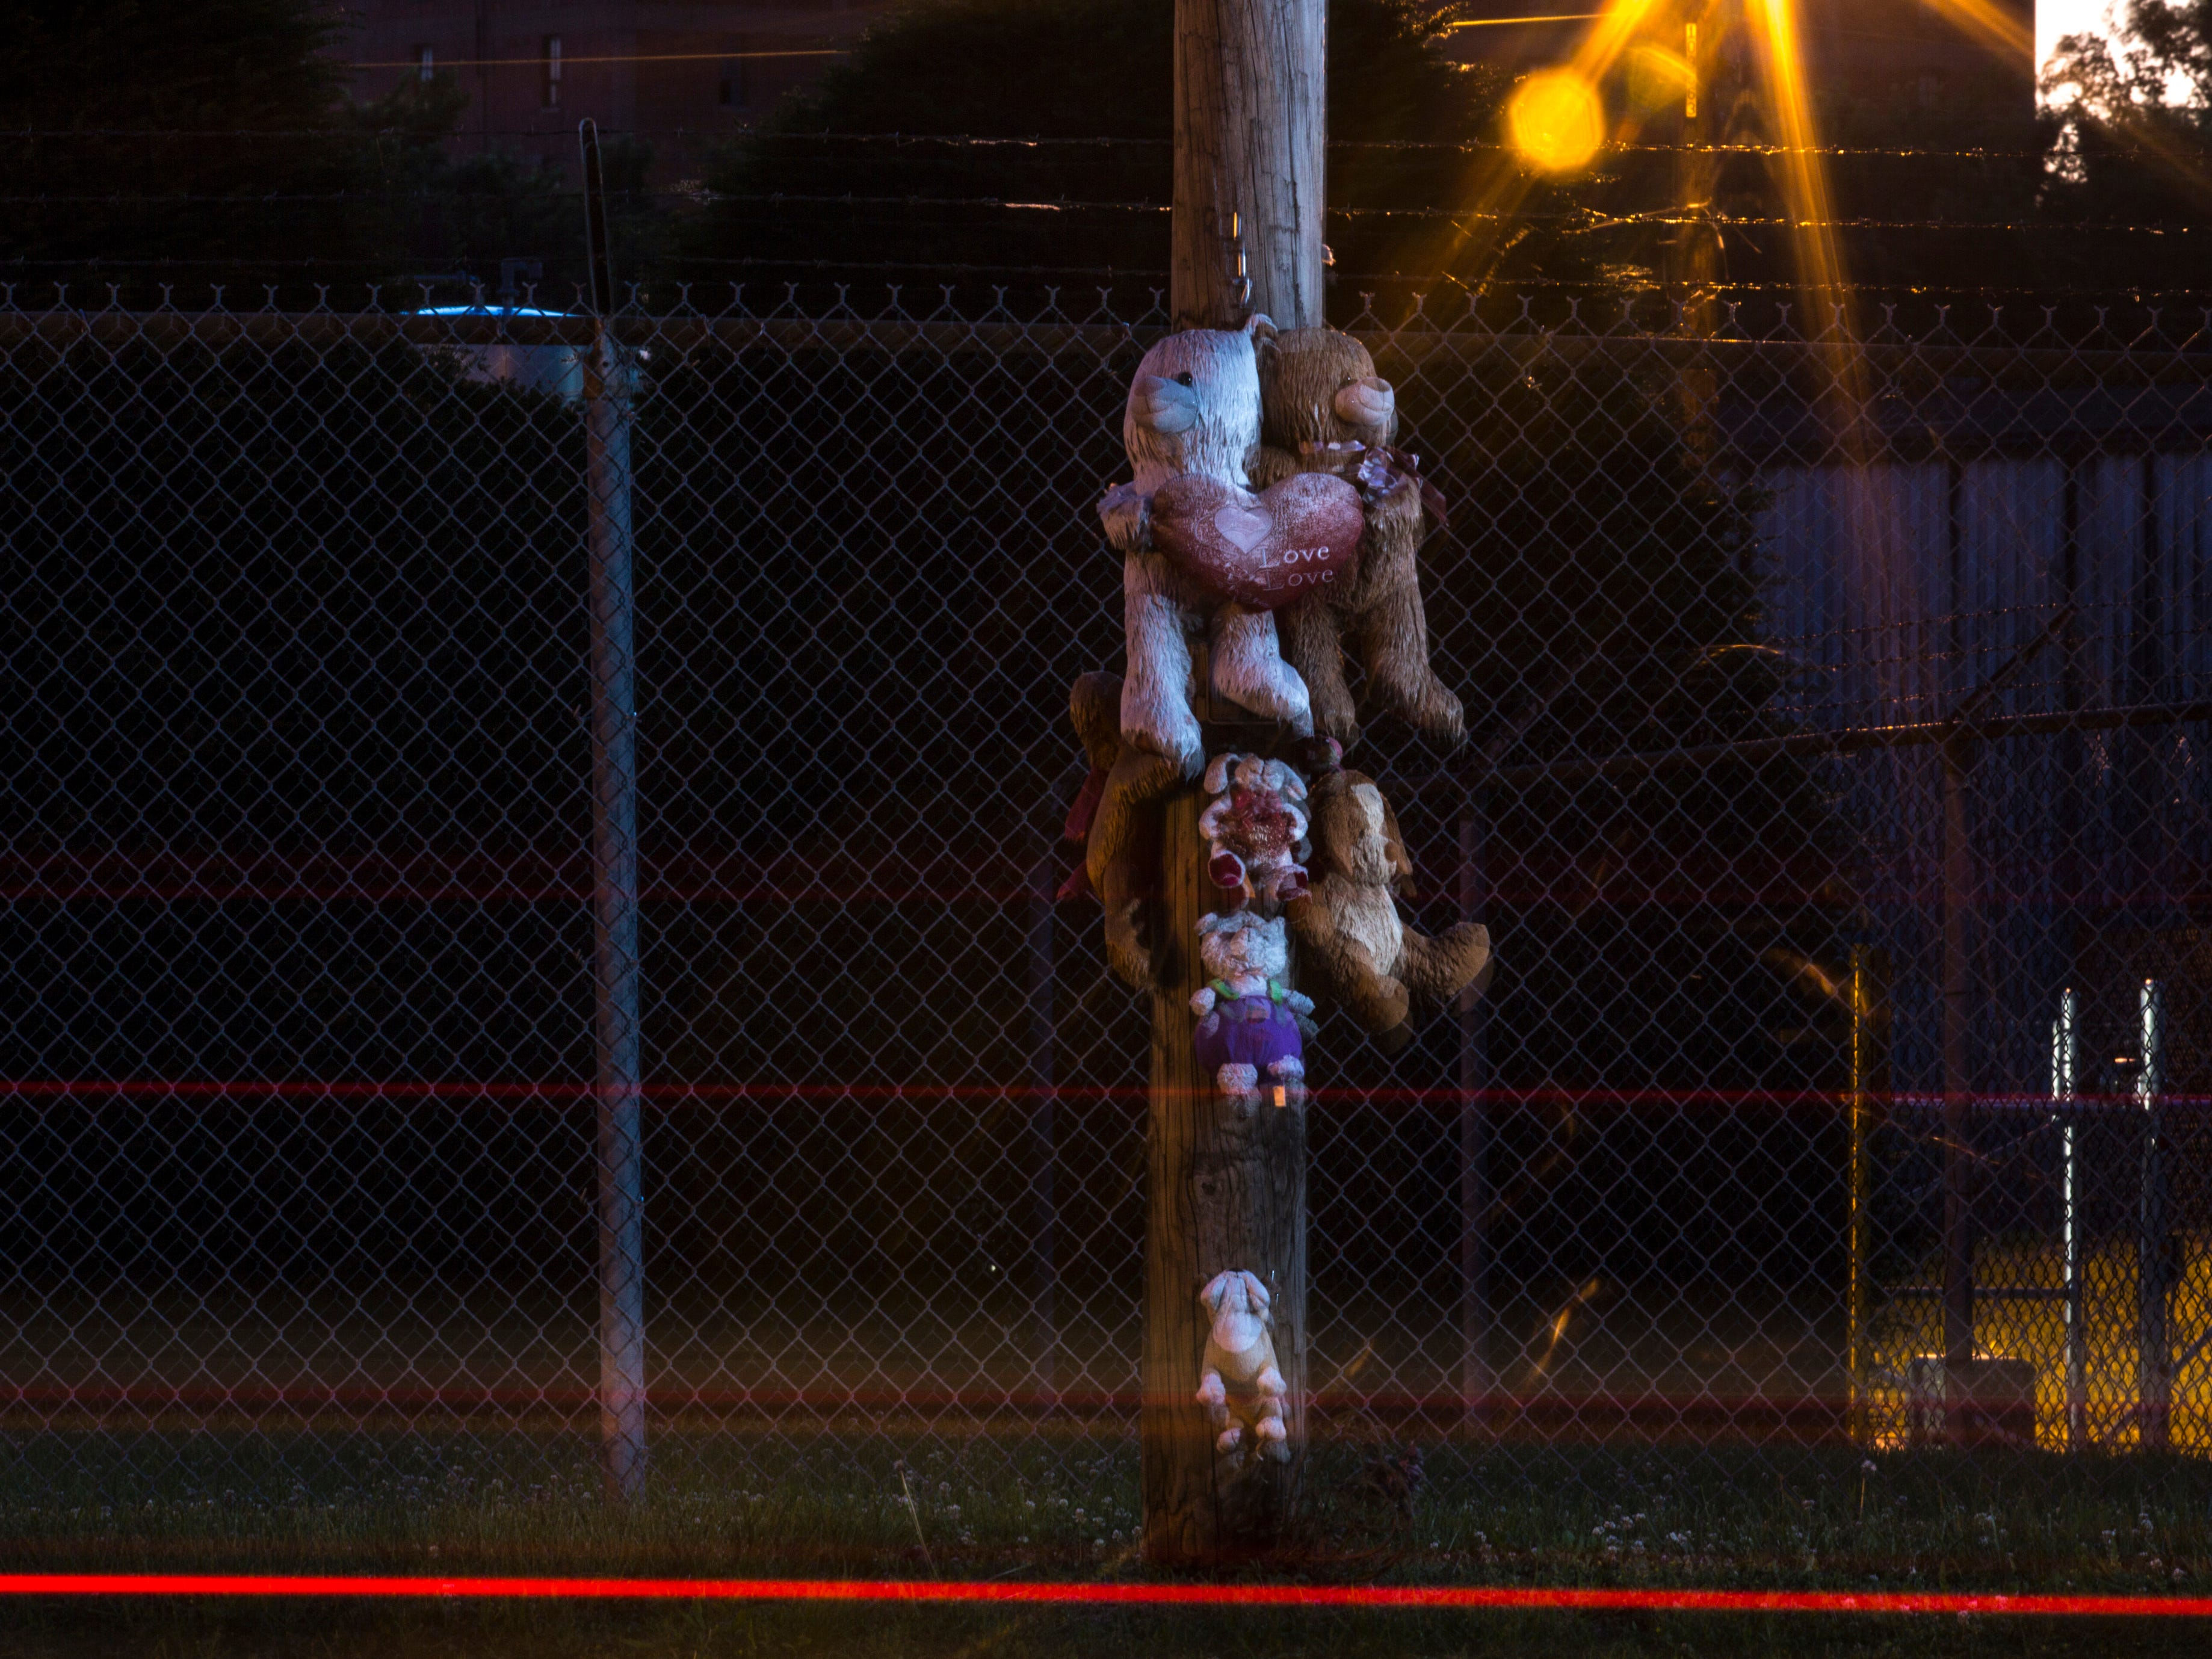 """A """"murder bear"""" shrine was placed on a utility pole, signifying the site of a violent death.  June 6, 2018."""